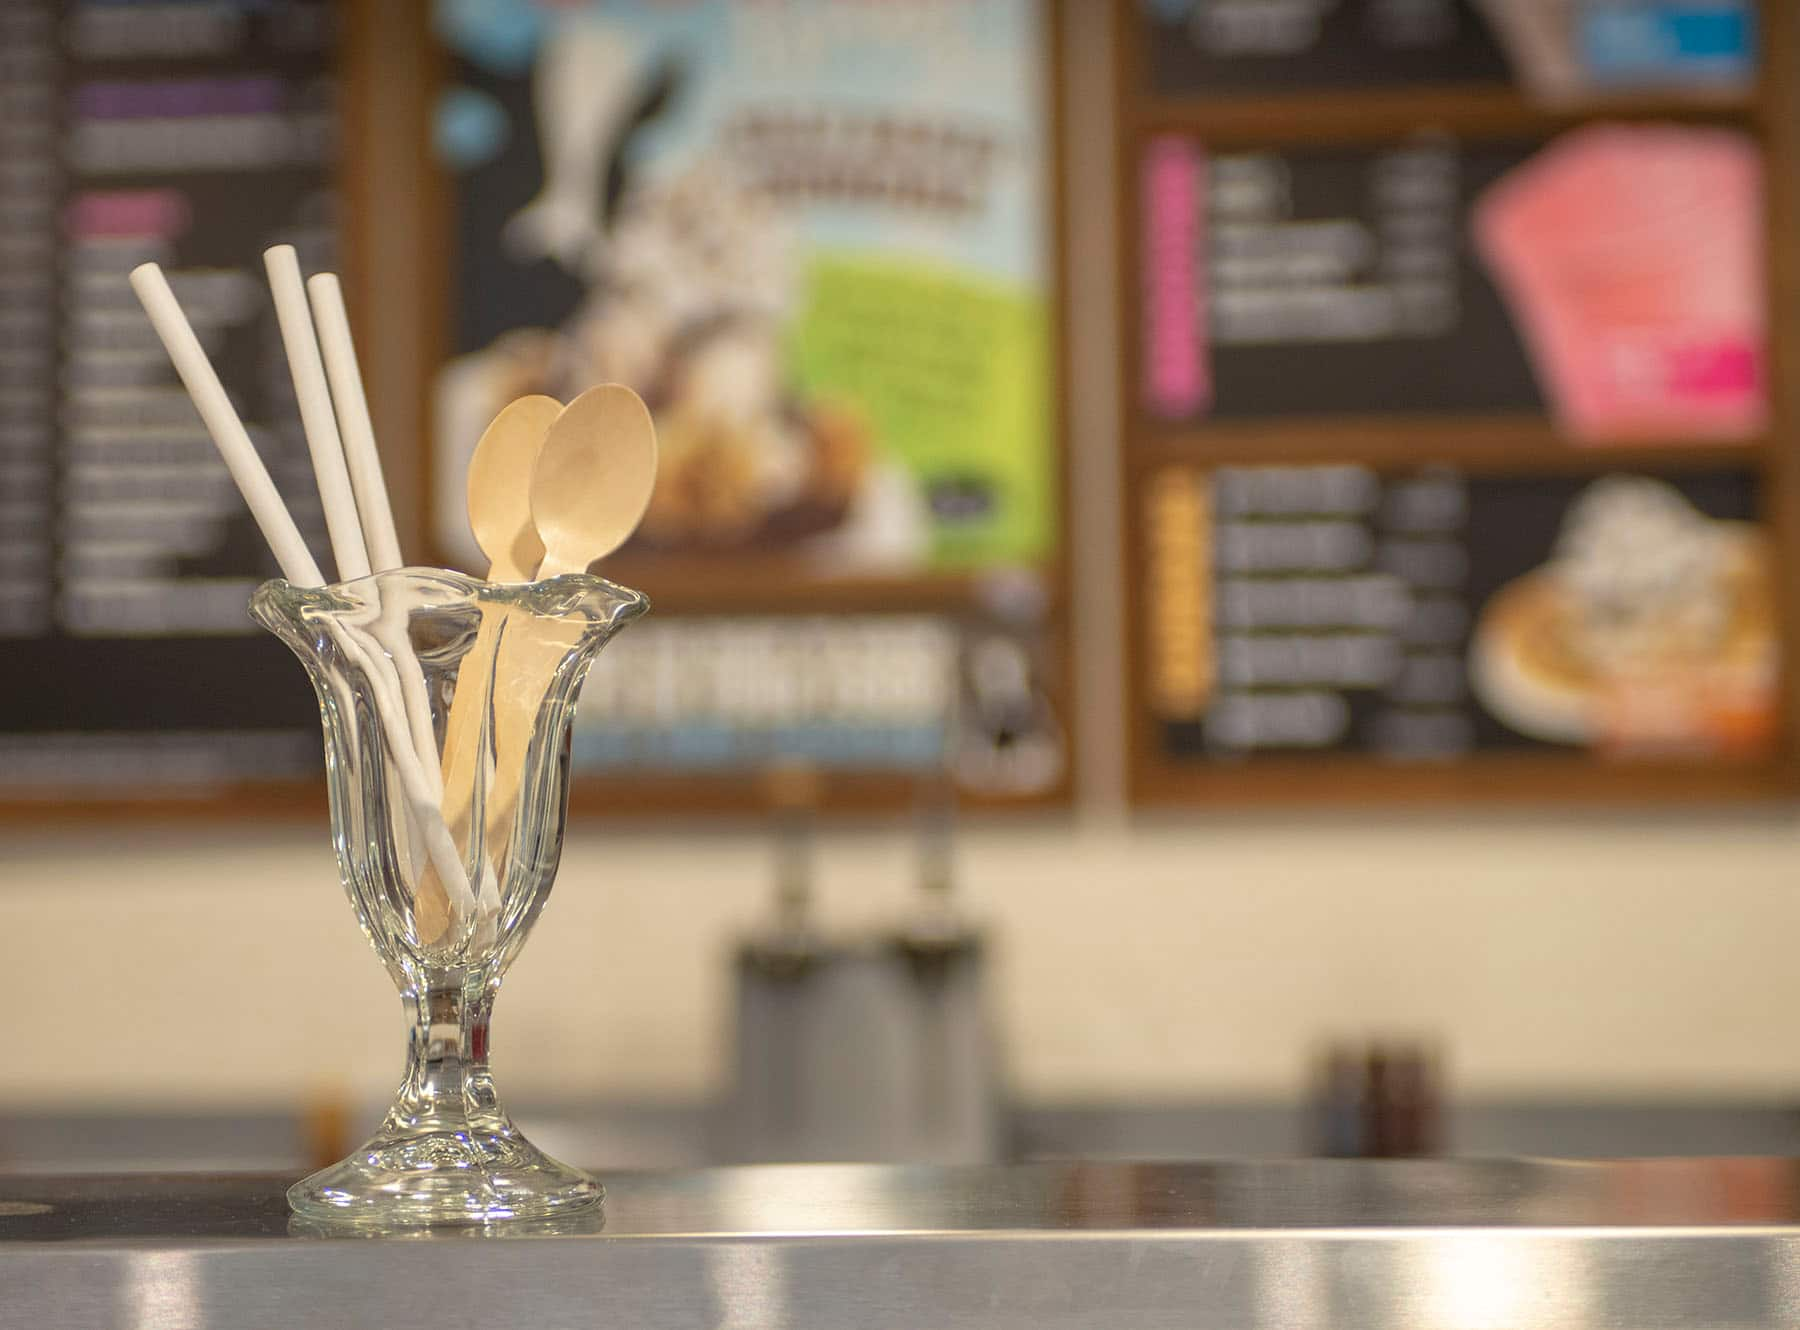 The final straw: Ben & Jerry's announces plan to eliminate single-use plastic in Scoop Shops worldwide